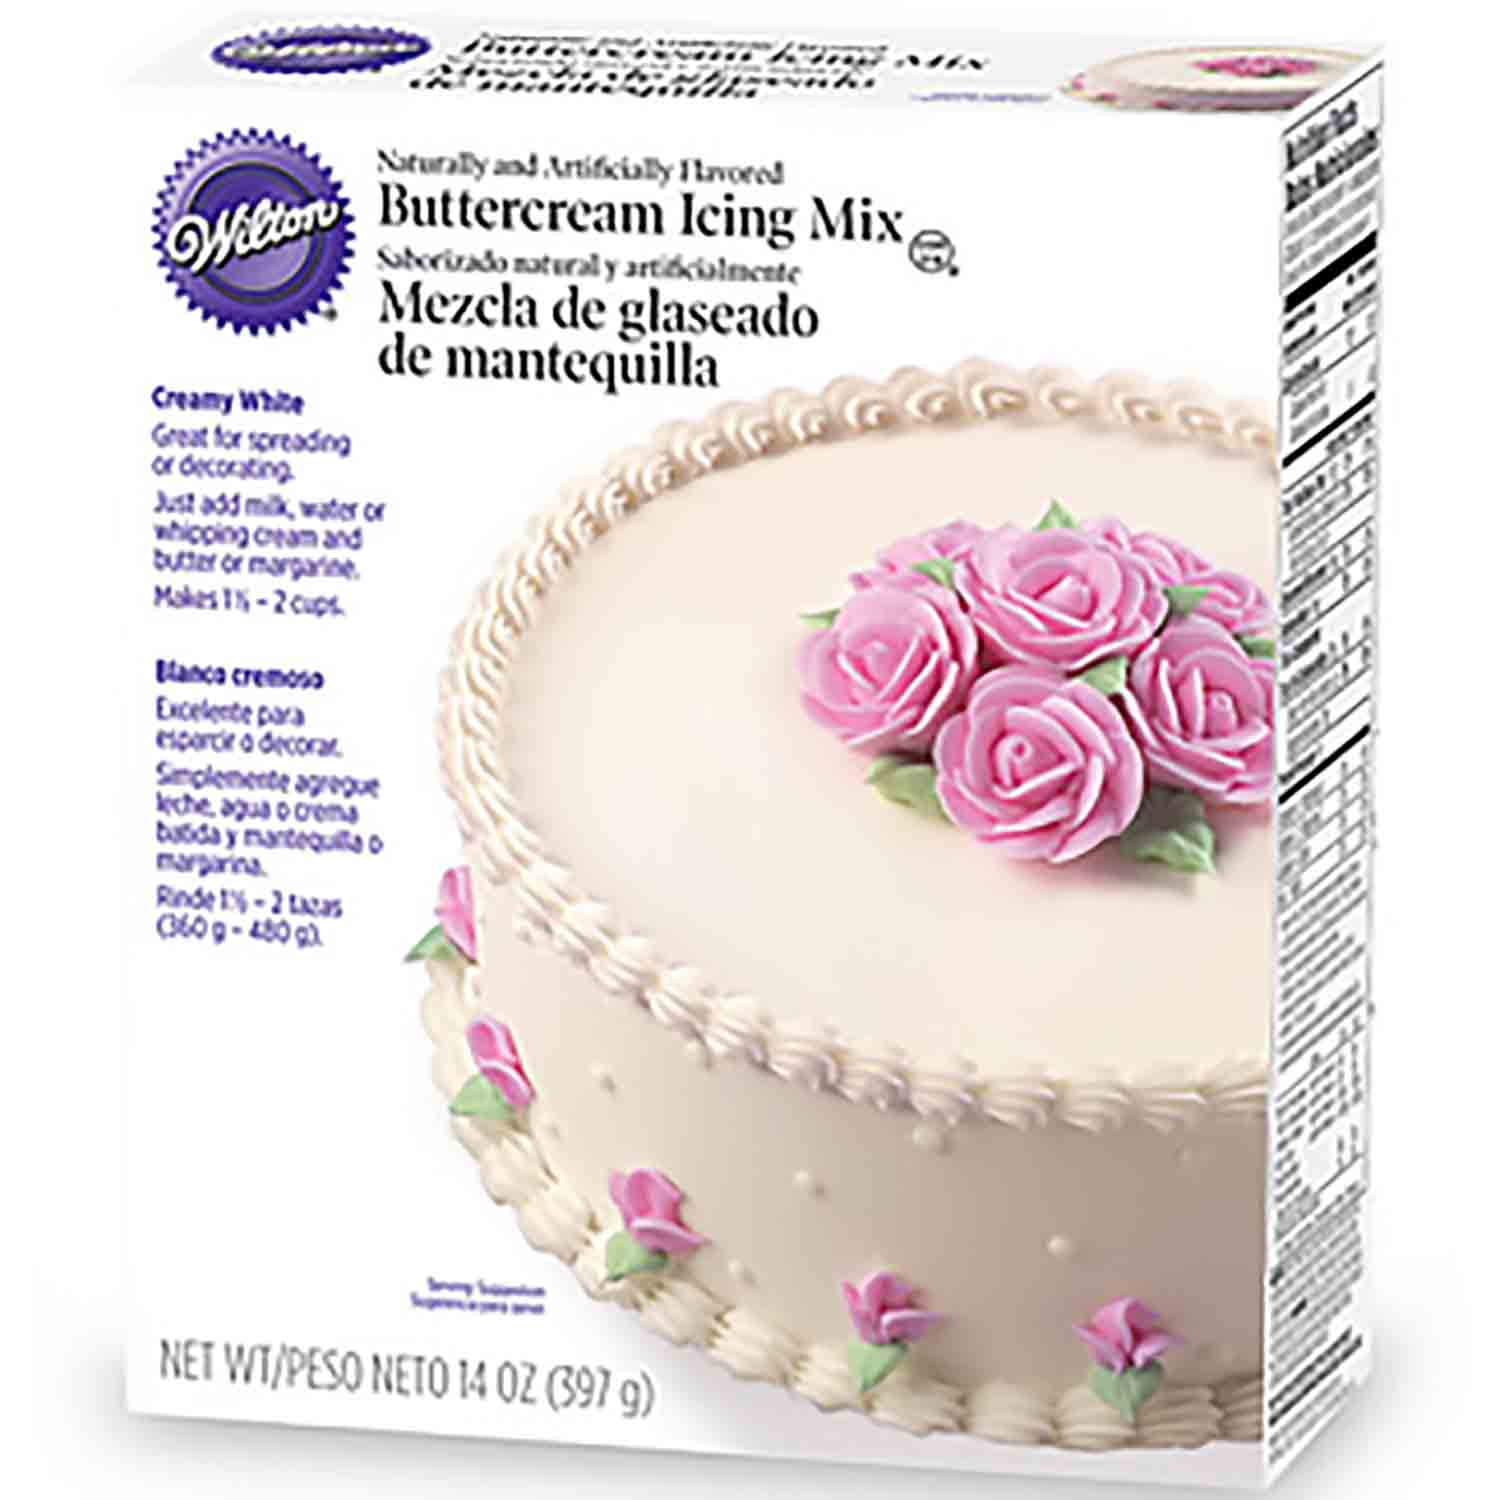 Wilton Creamy White Icing Mix